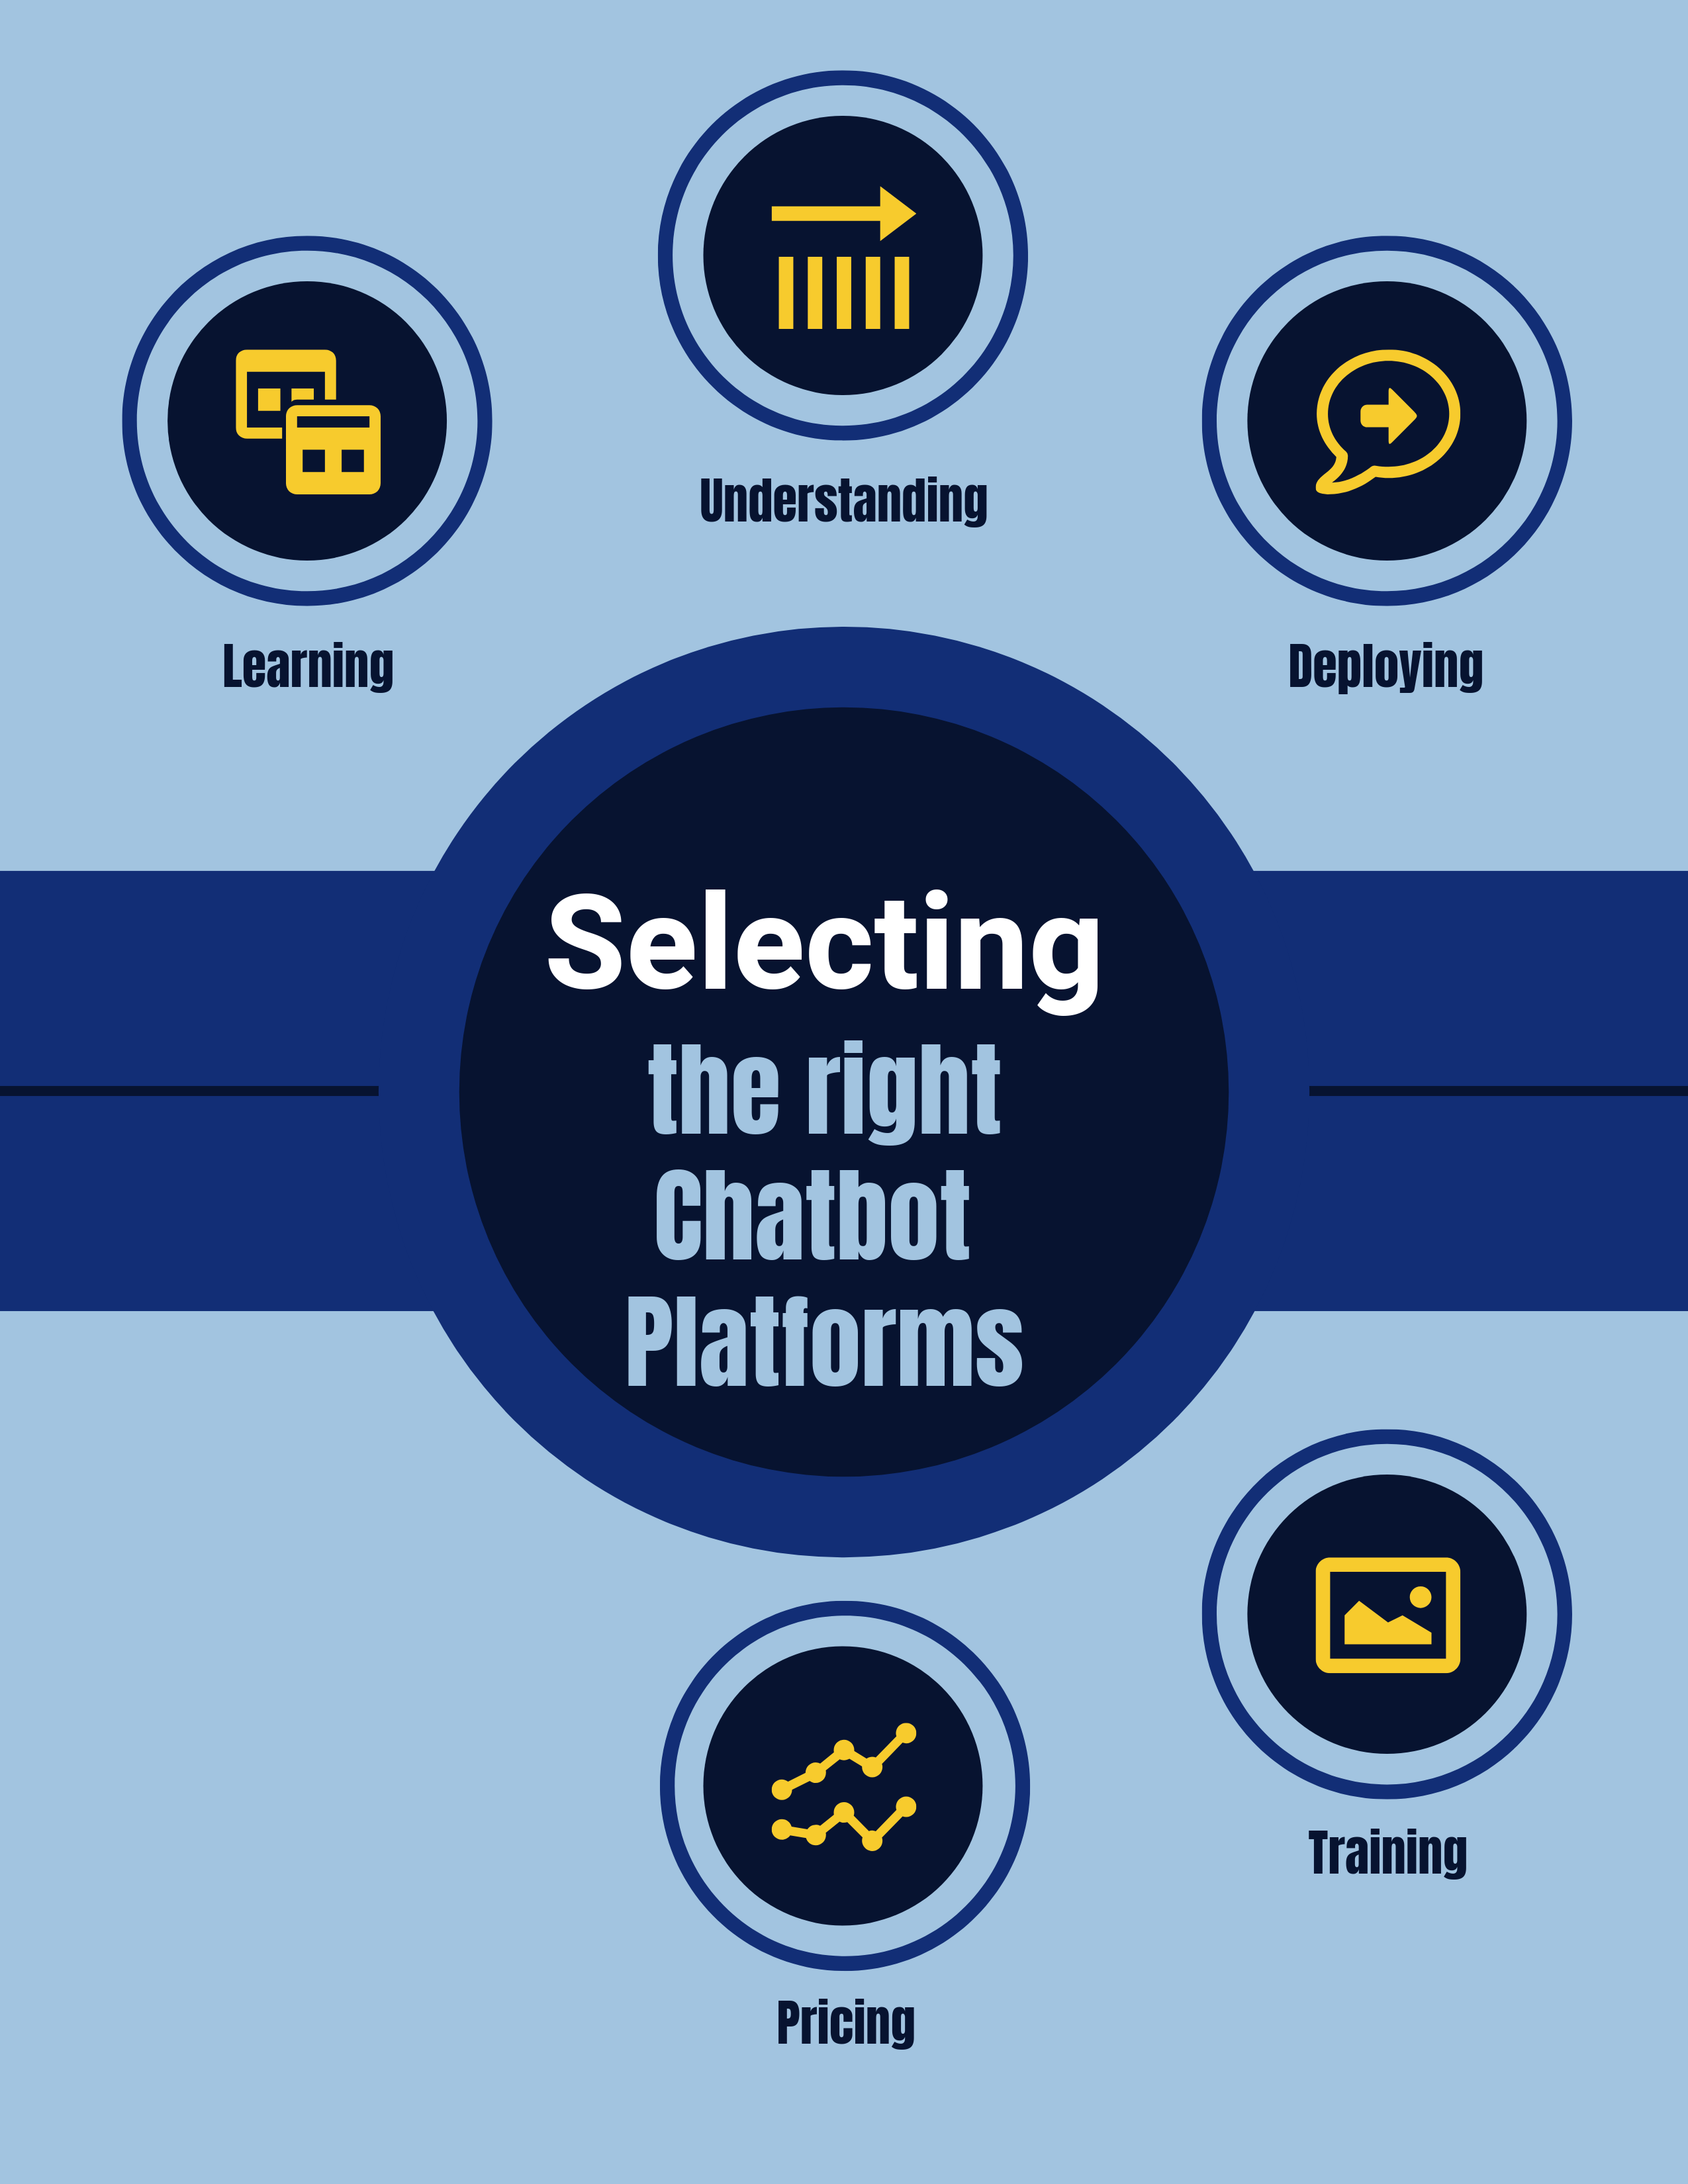 How to choose the right Chatbot Platforms